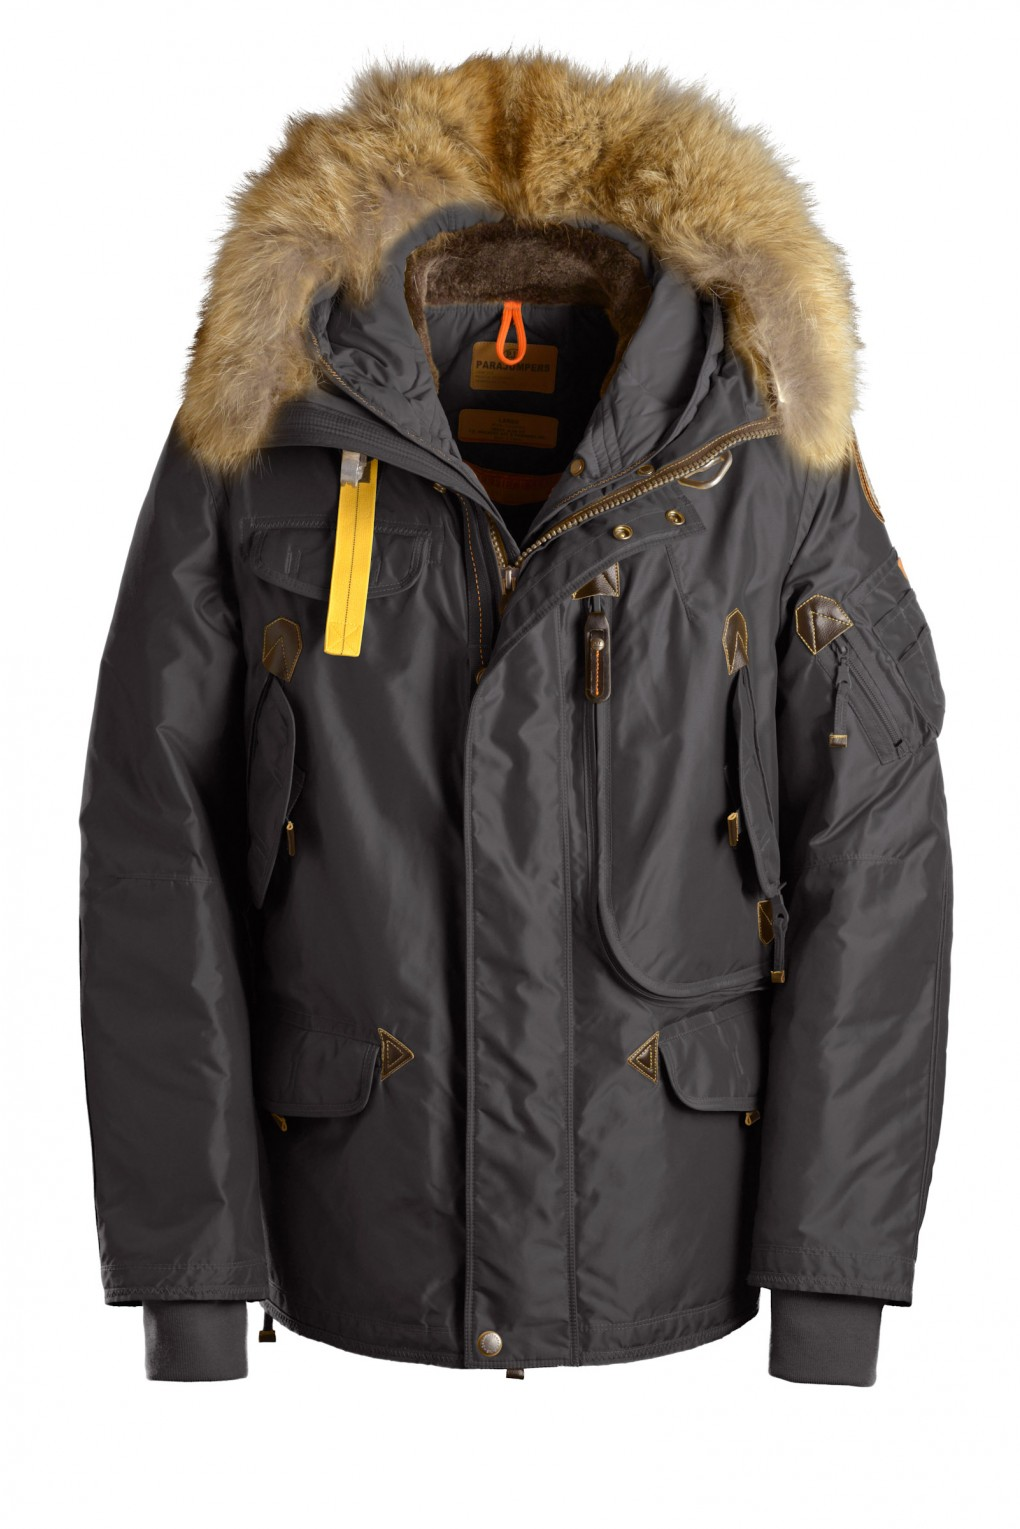 parajumpers RIGHT HAND man outerwear Brown